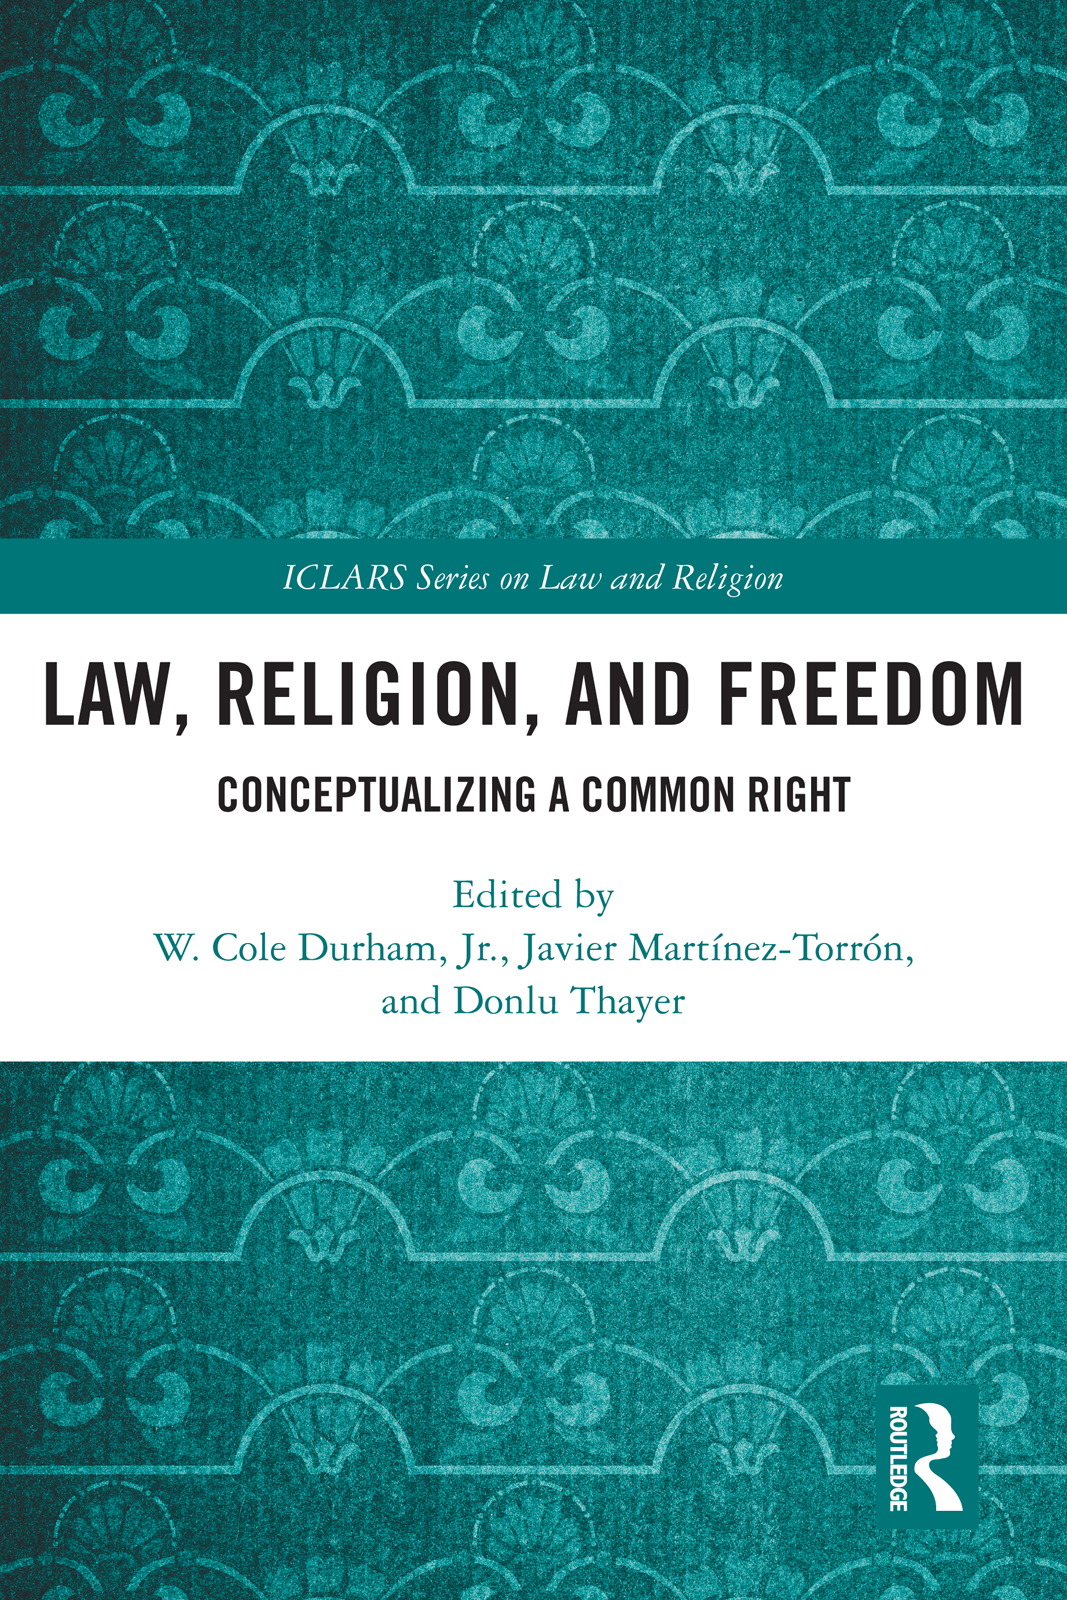 Law, Religion, and Freedom